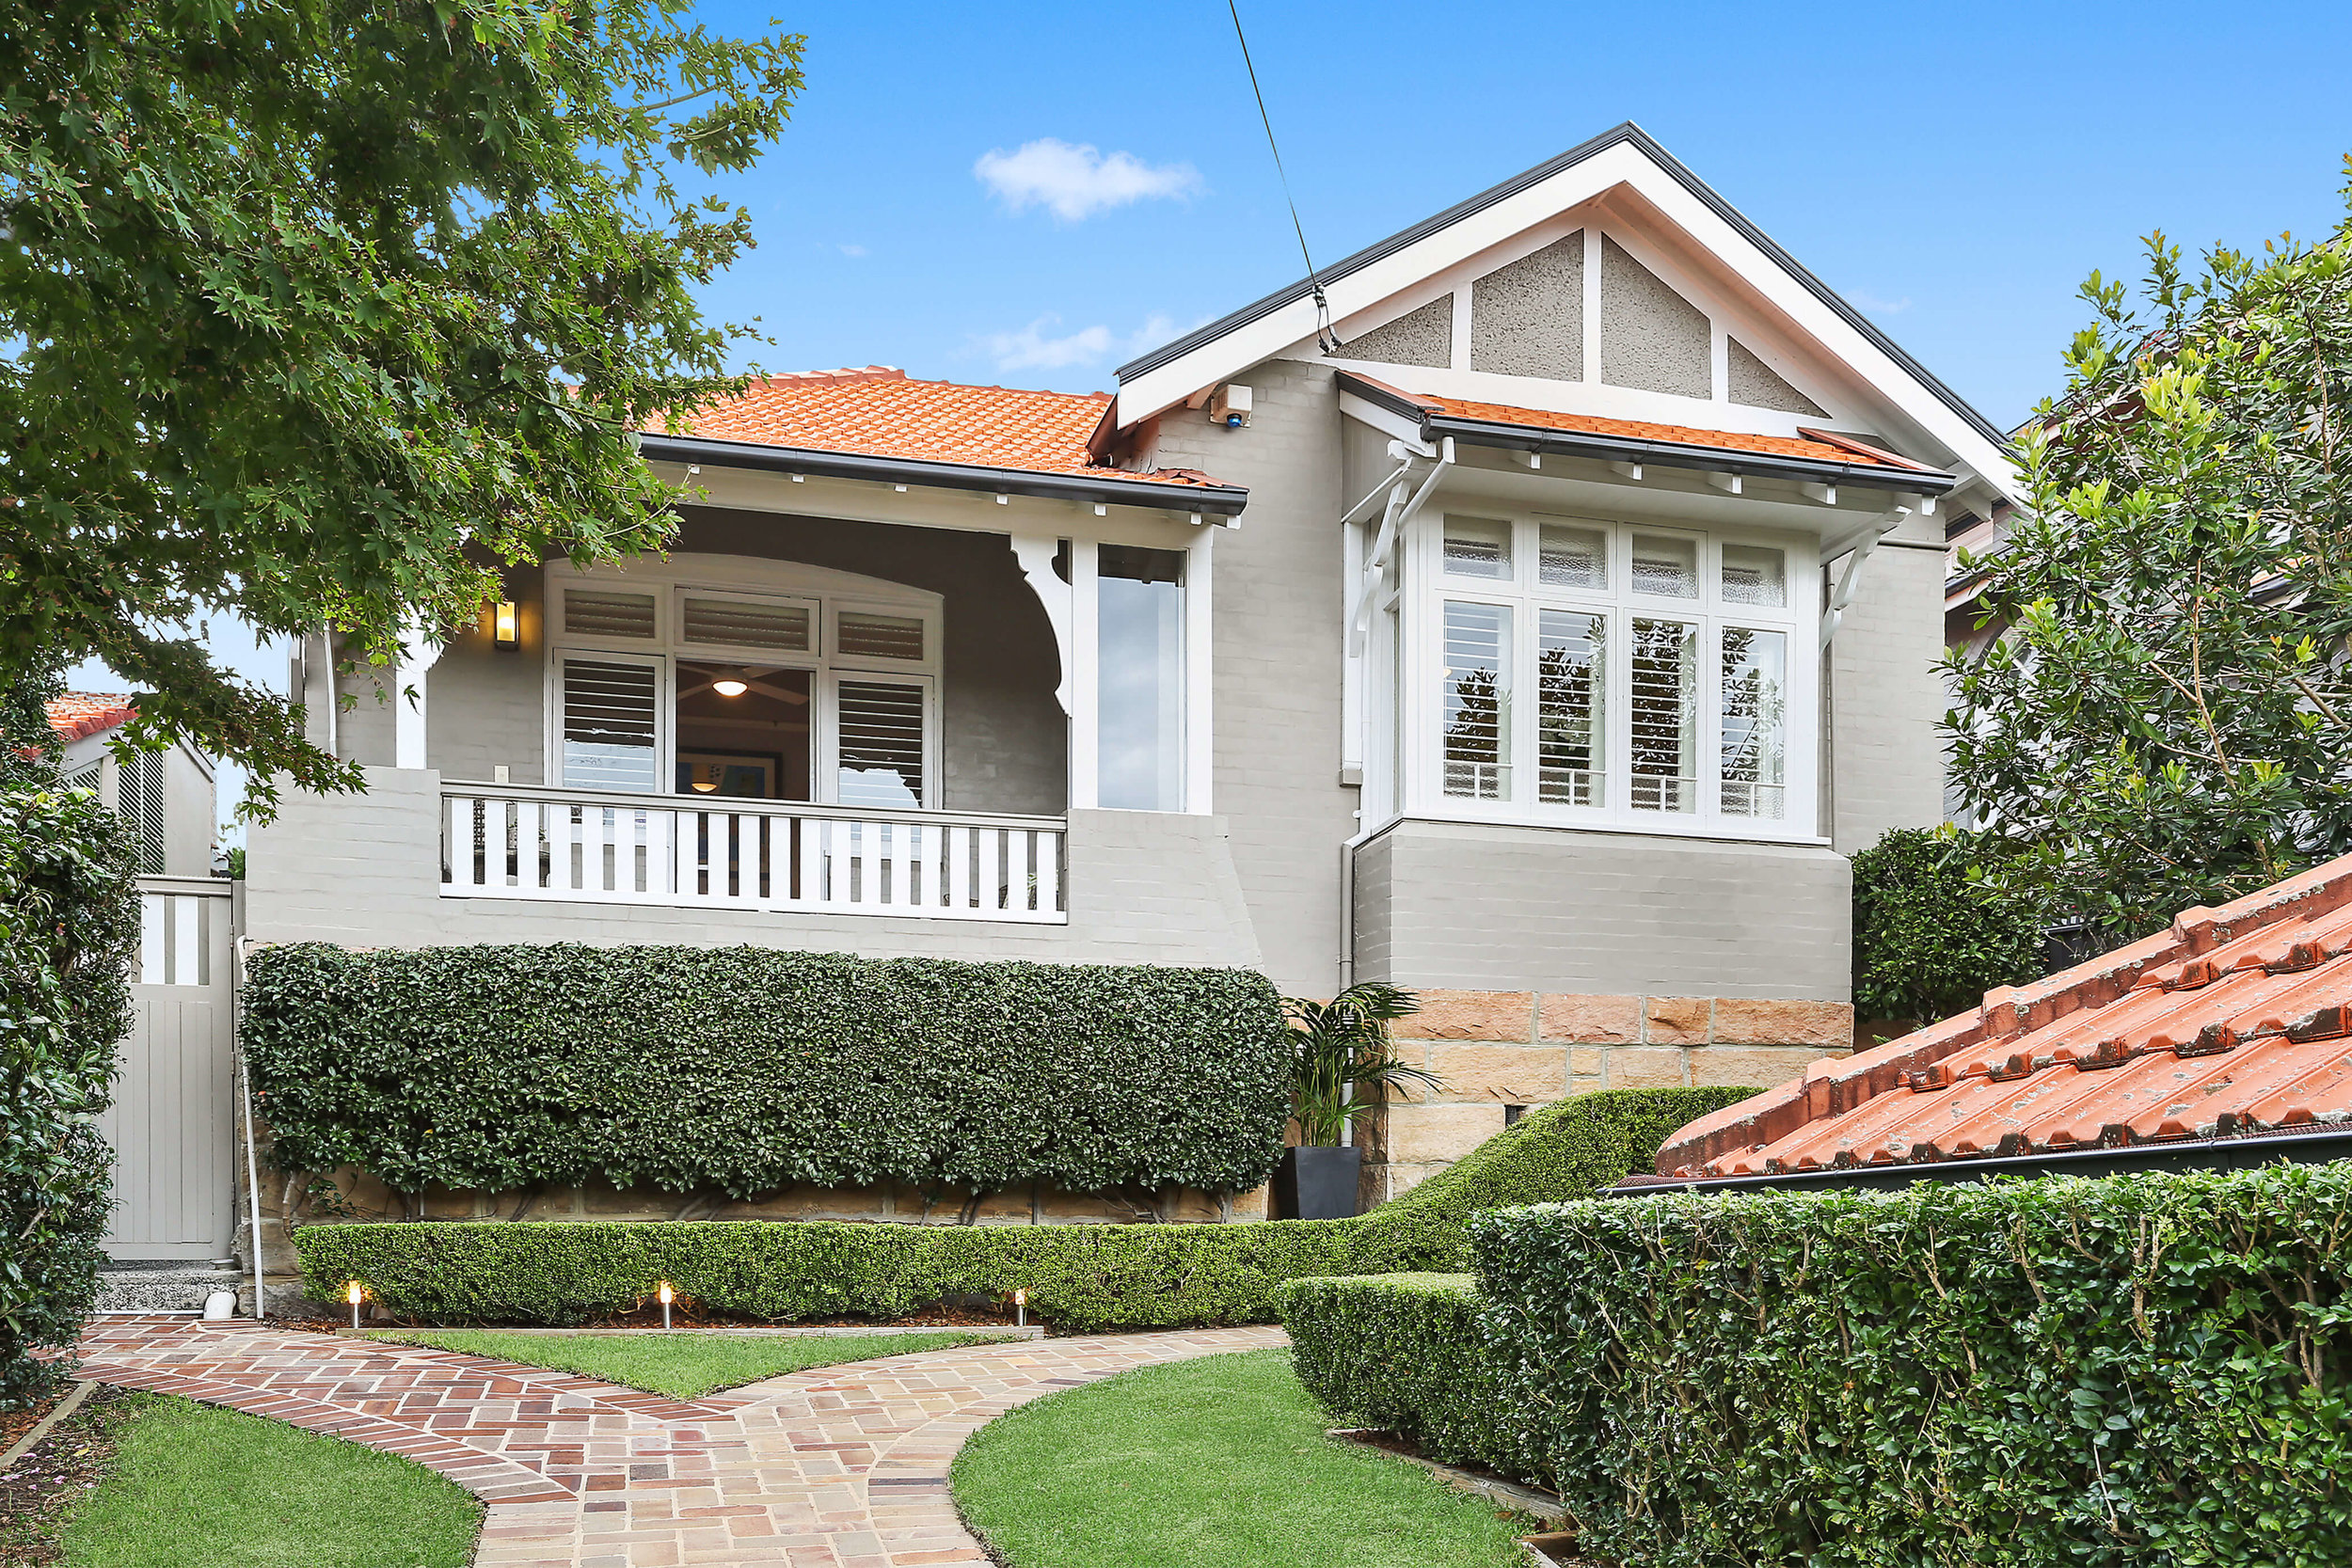 41 Countess St. Sold prior to auction for $3.35m in May 2019.